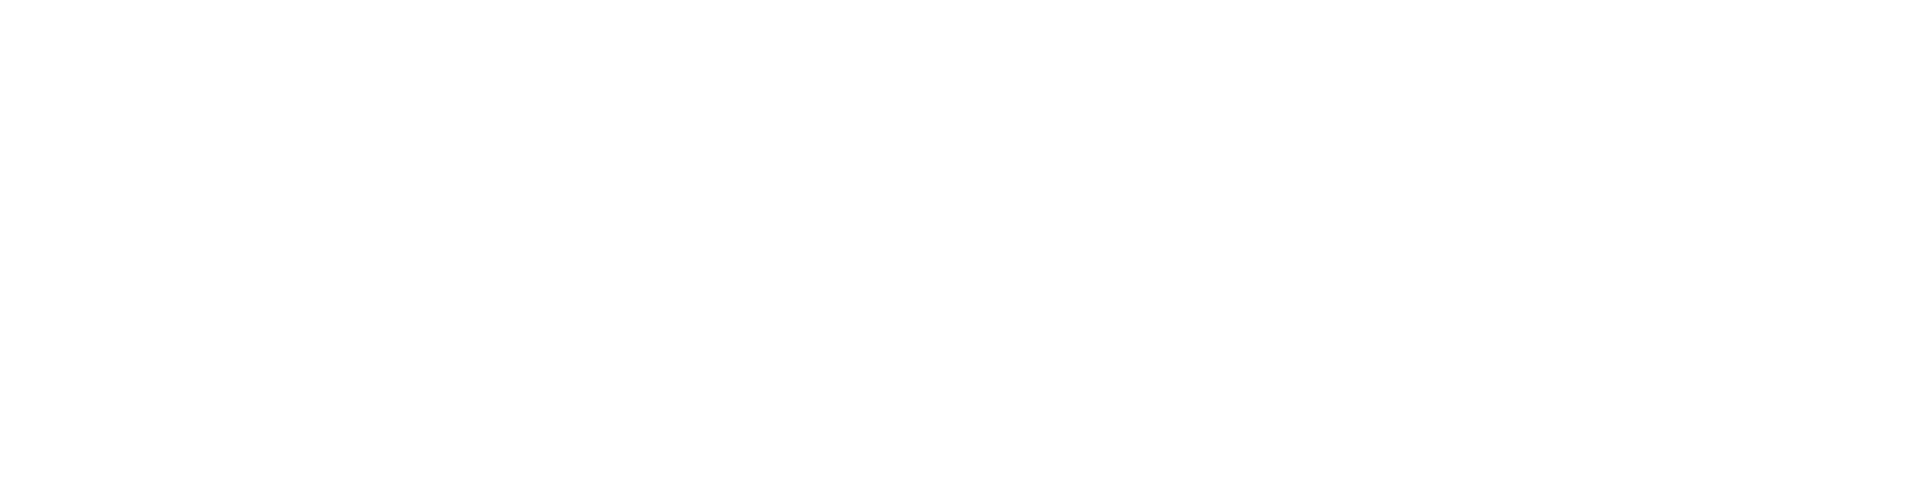 Disney, National Geographic, Virgin Media, Henry Schein